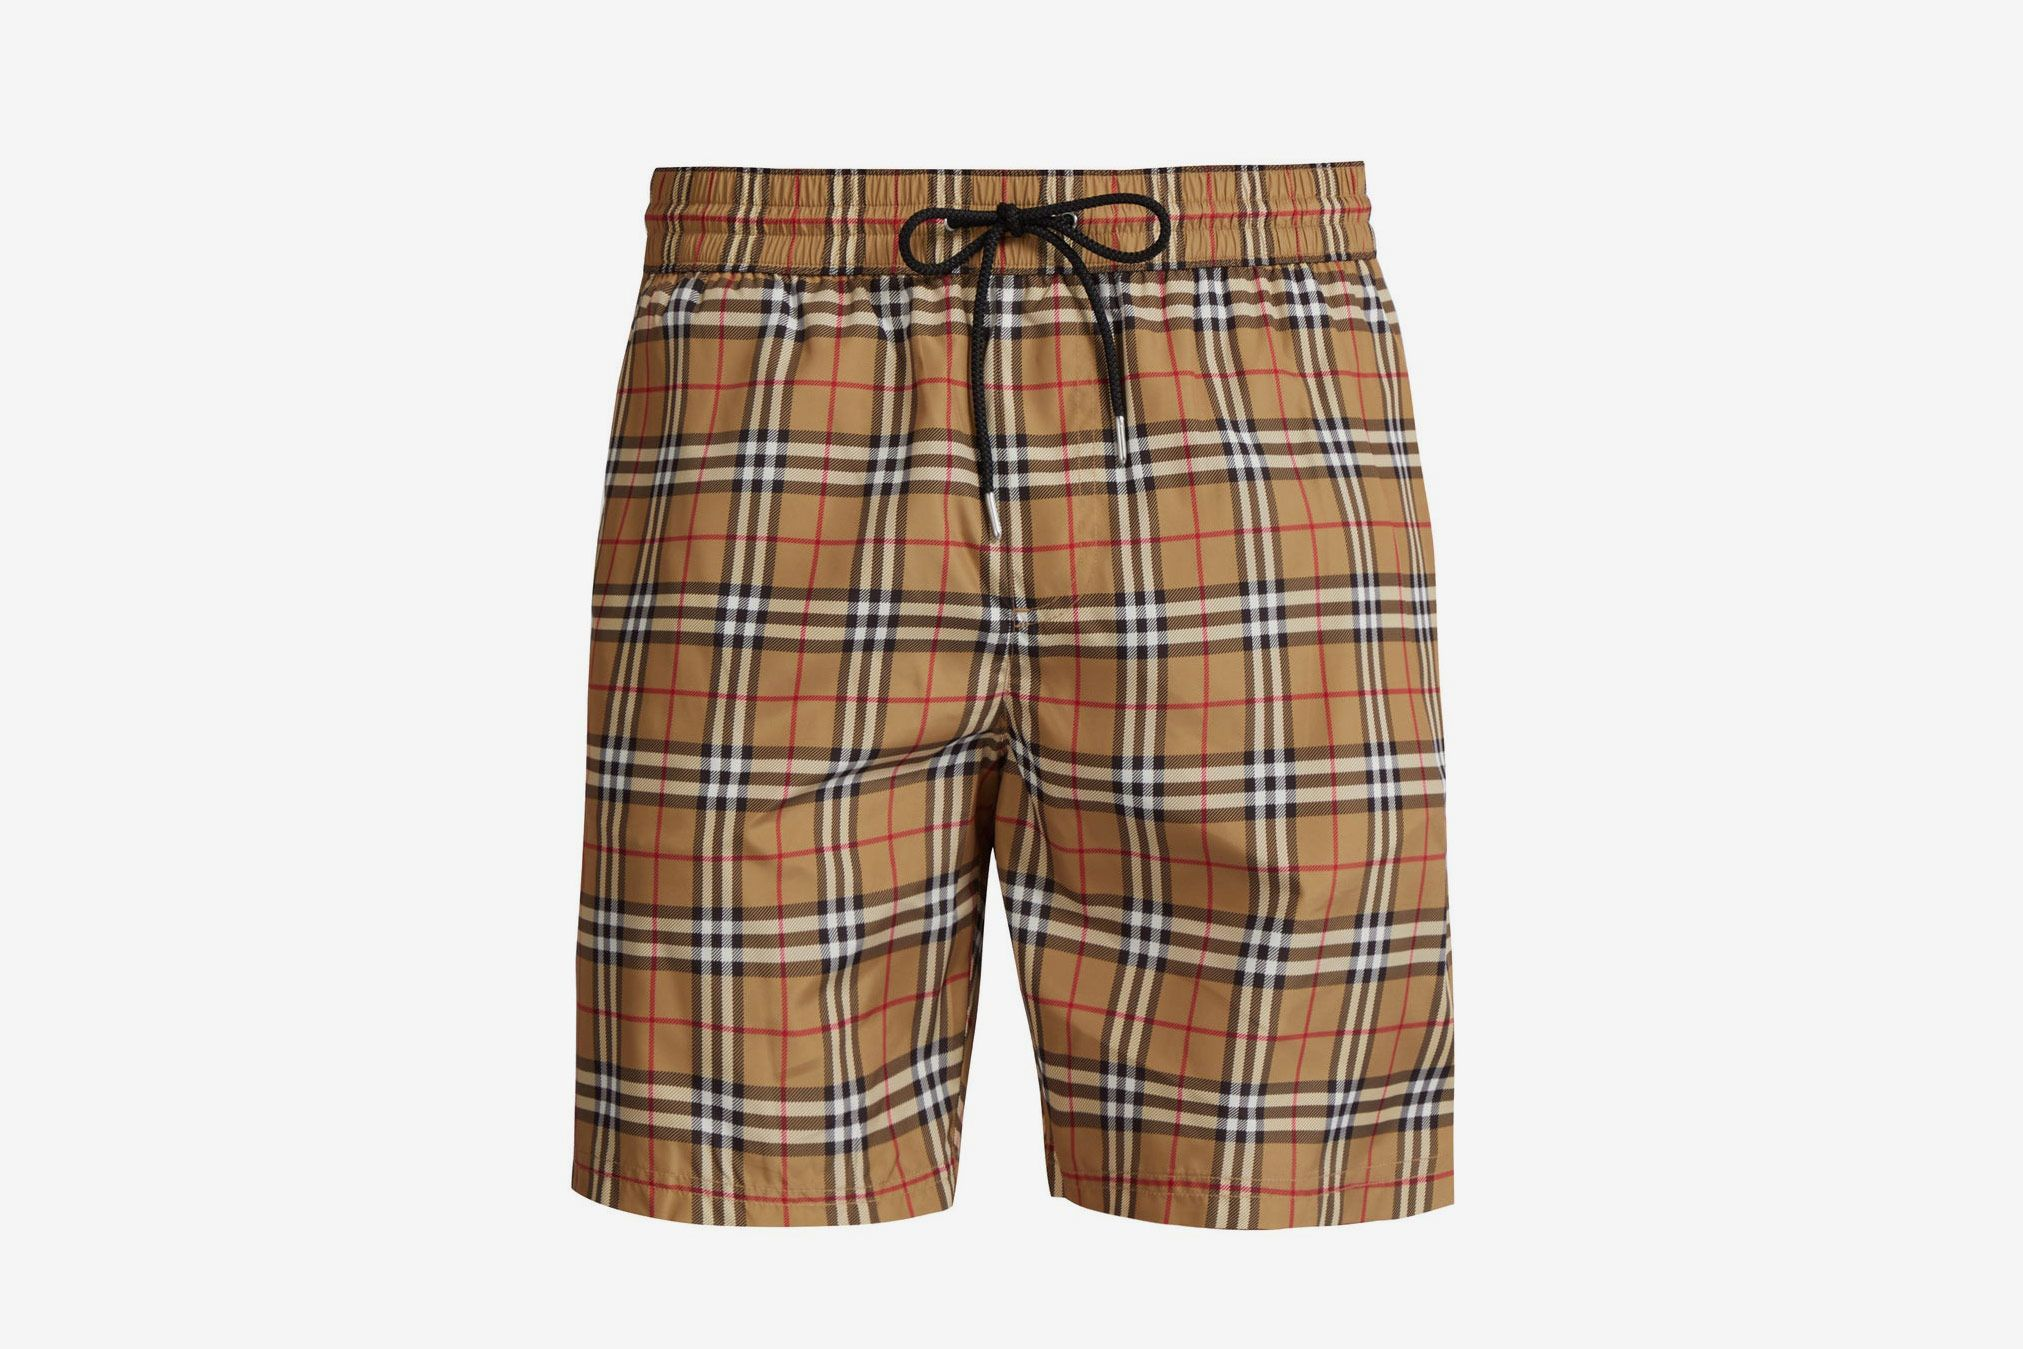 c7c76bf047f60 Burberry Vintage-check Swim Shorts at Matches Fashion